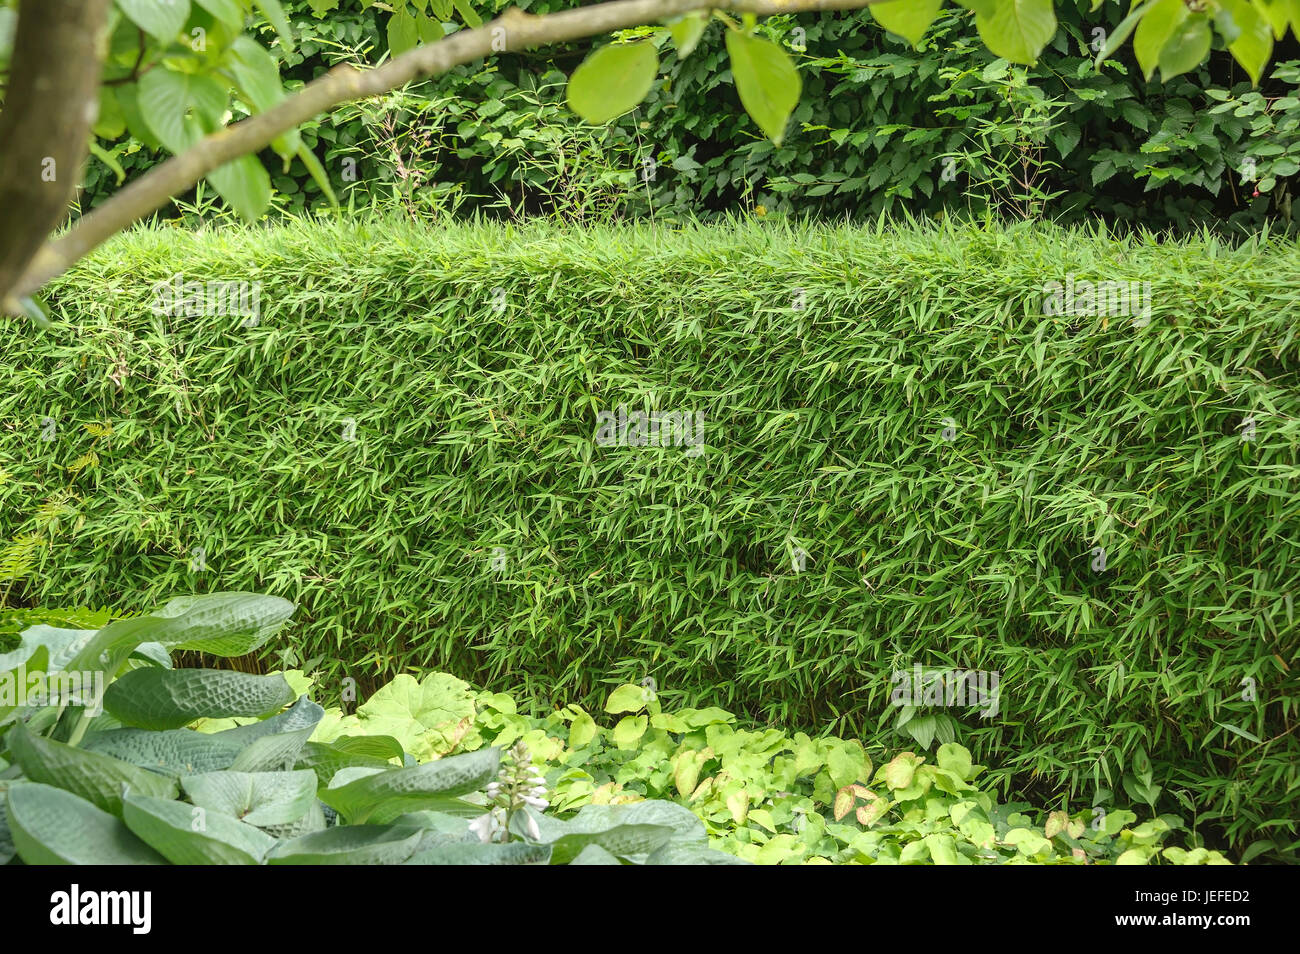 Bambus Hecke Stock Photos Bambus Hecke Stock Images Alamy